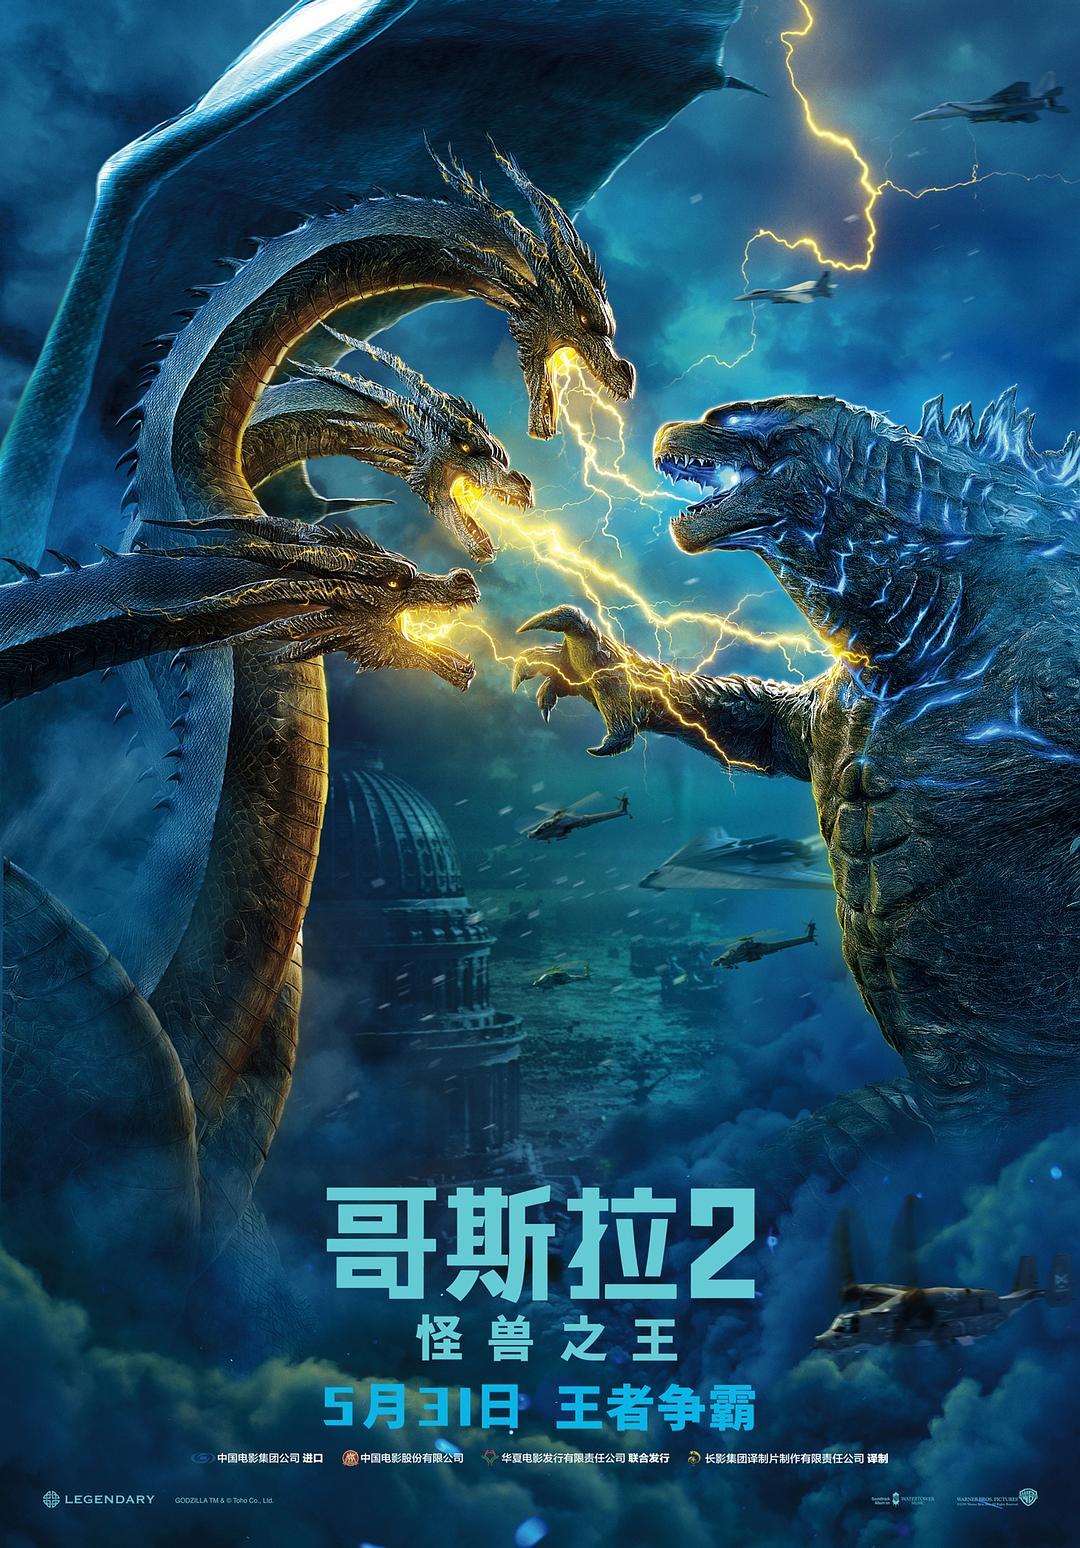 悠悠MP4_MP4电影下载_哥斯拉2:怪兽之王 Godzilla.King.of.the.Monsters.2019.2160p.BluRay.x265.10bit.SDR.DTS-HD.